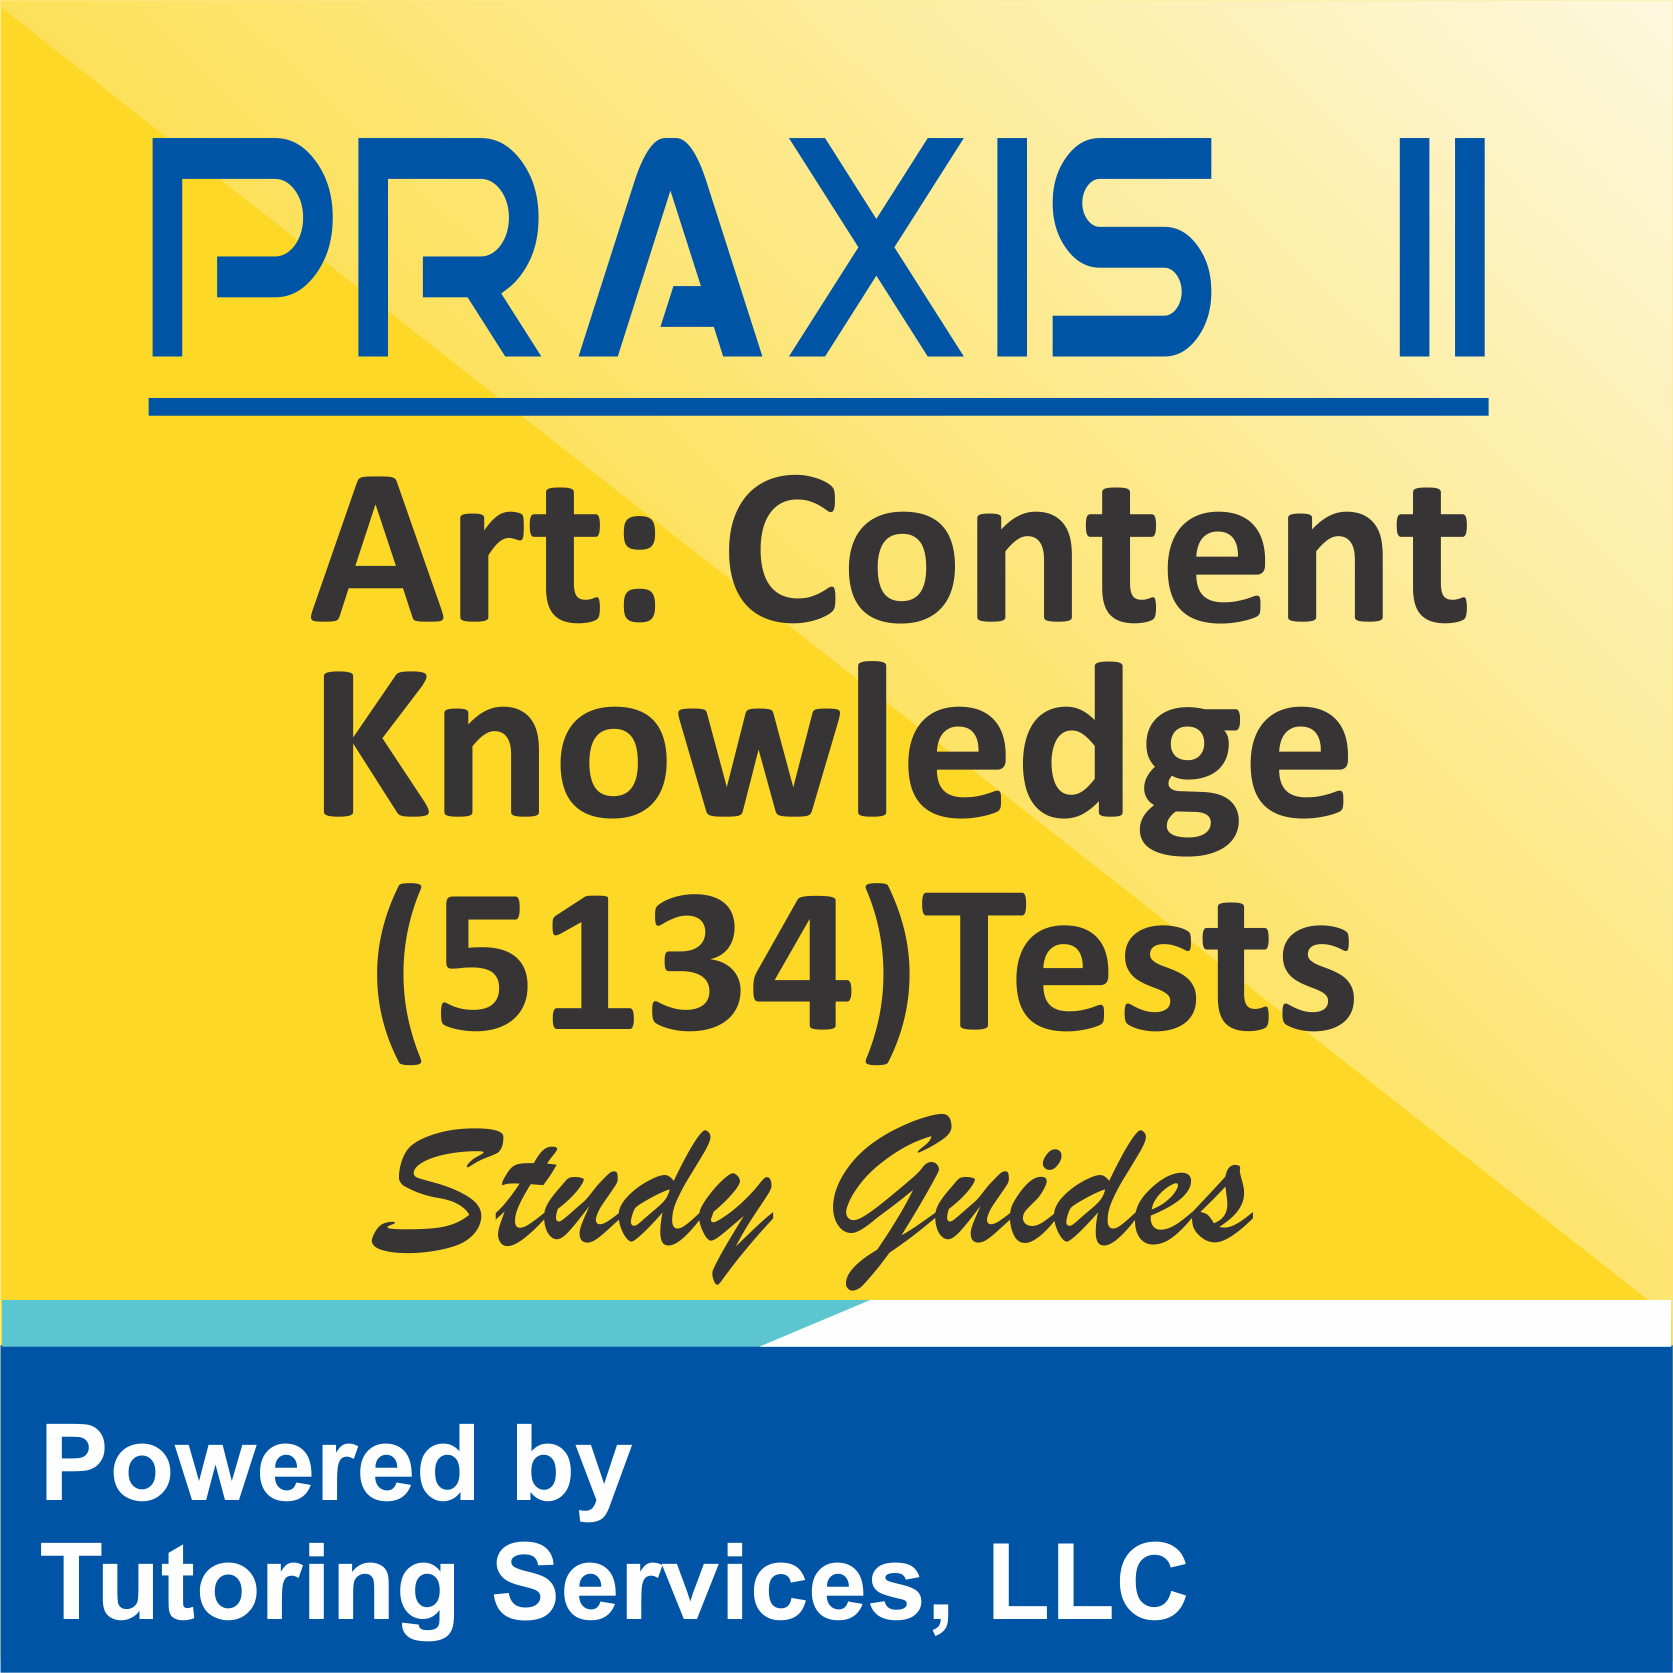 Praxis II Art: Content Knowledge (5134) Examination About